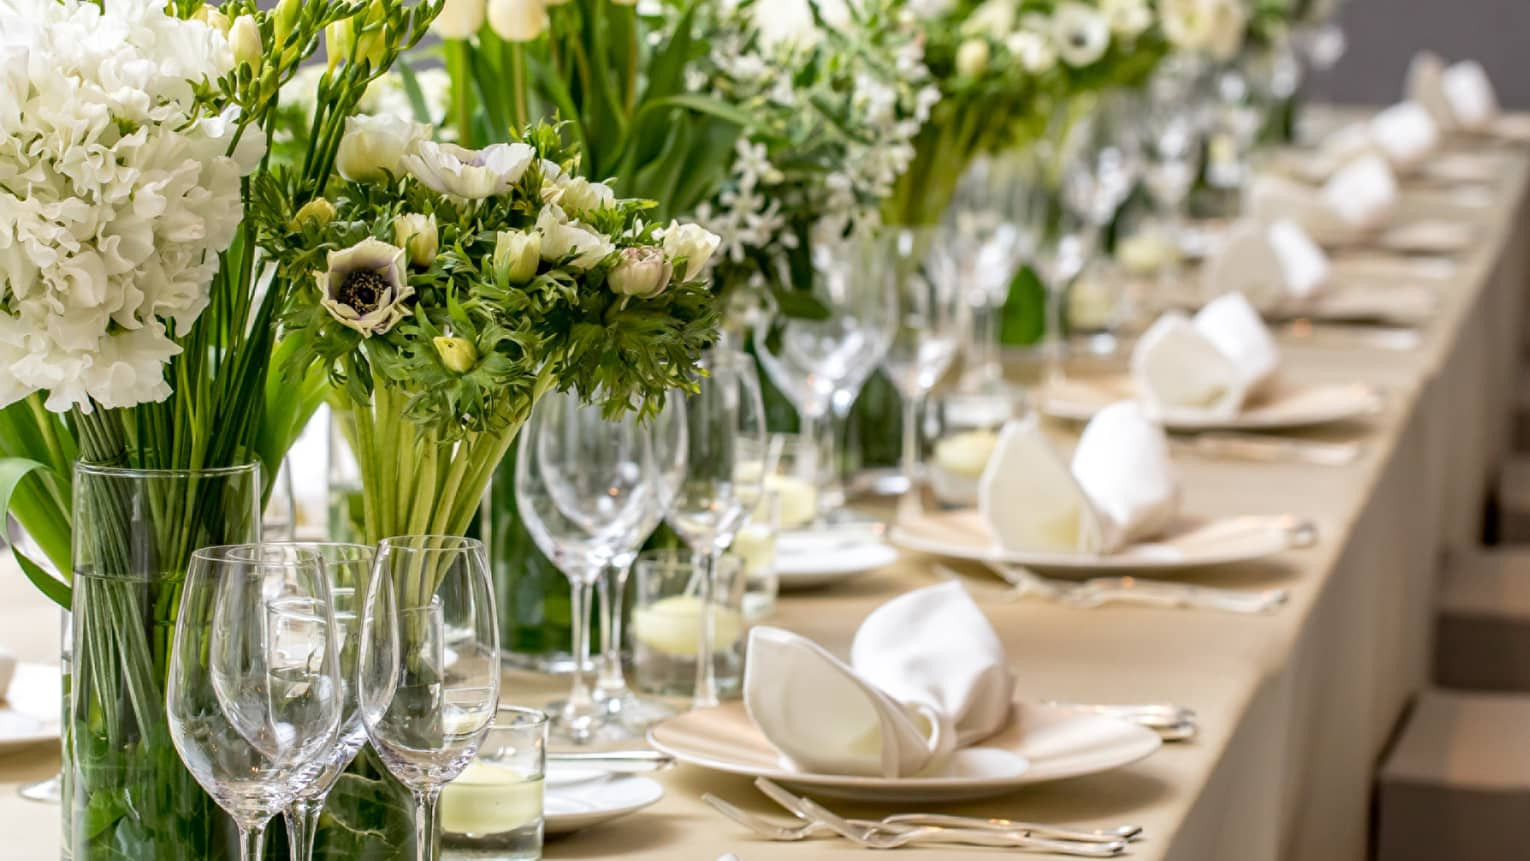 Close-up of long wedding dining table with wine glasses, white flowers in vases